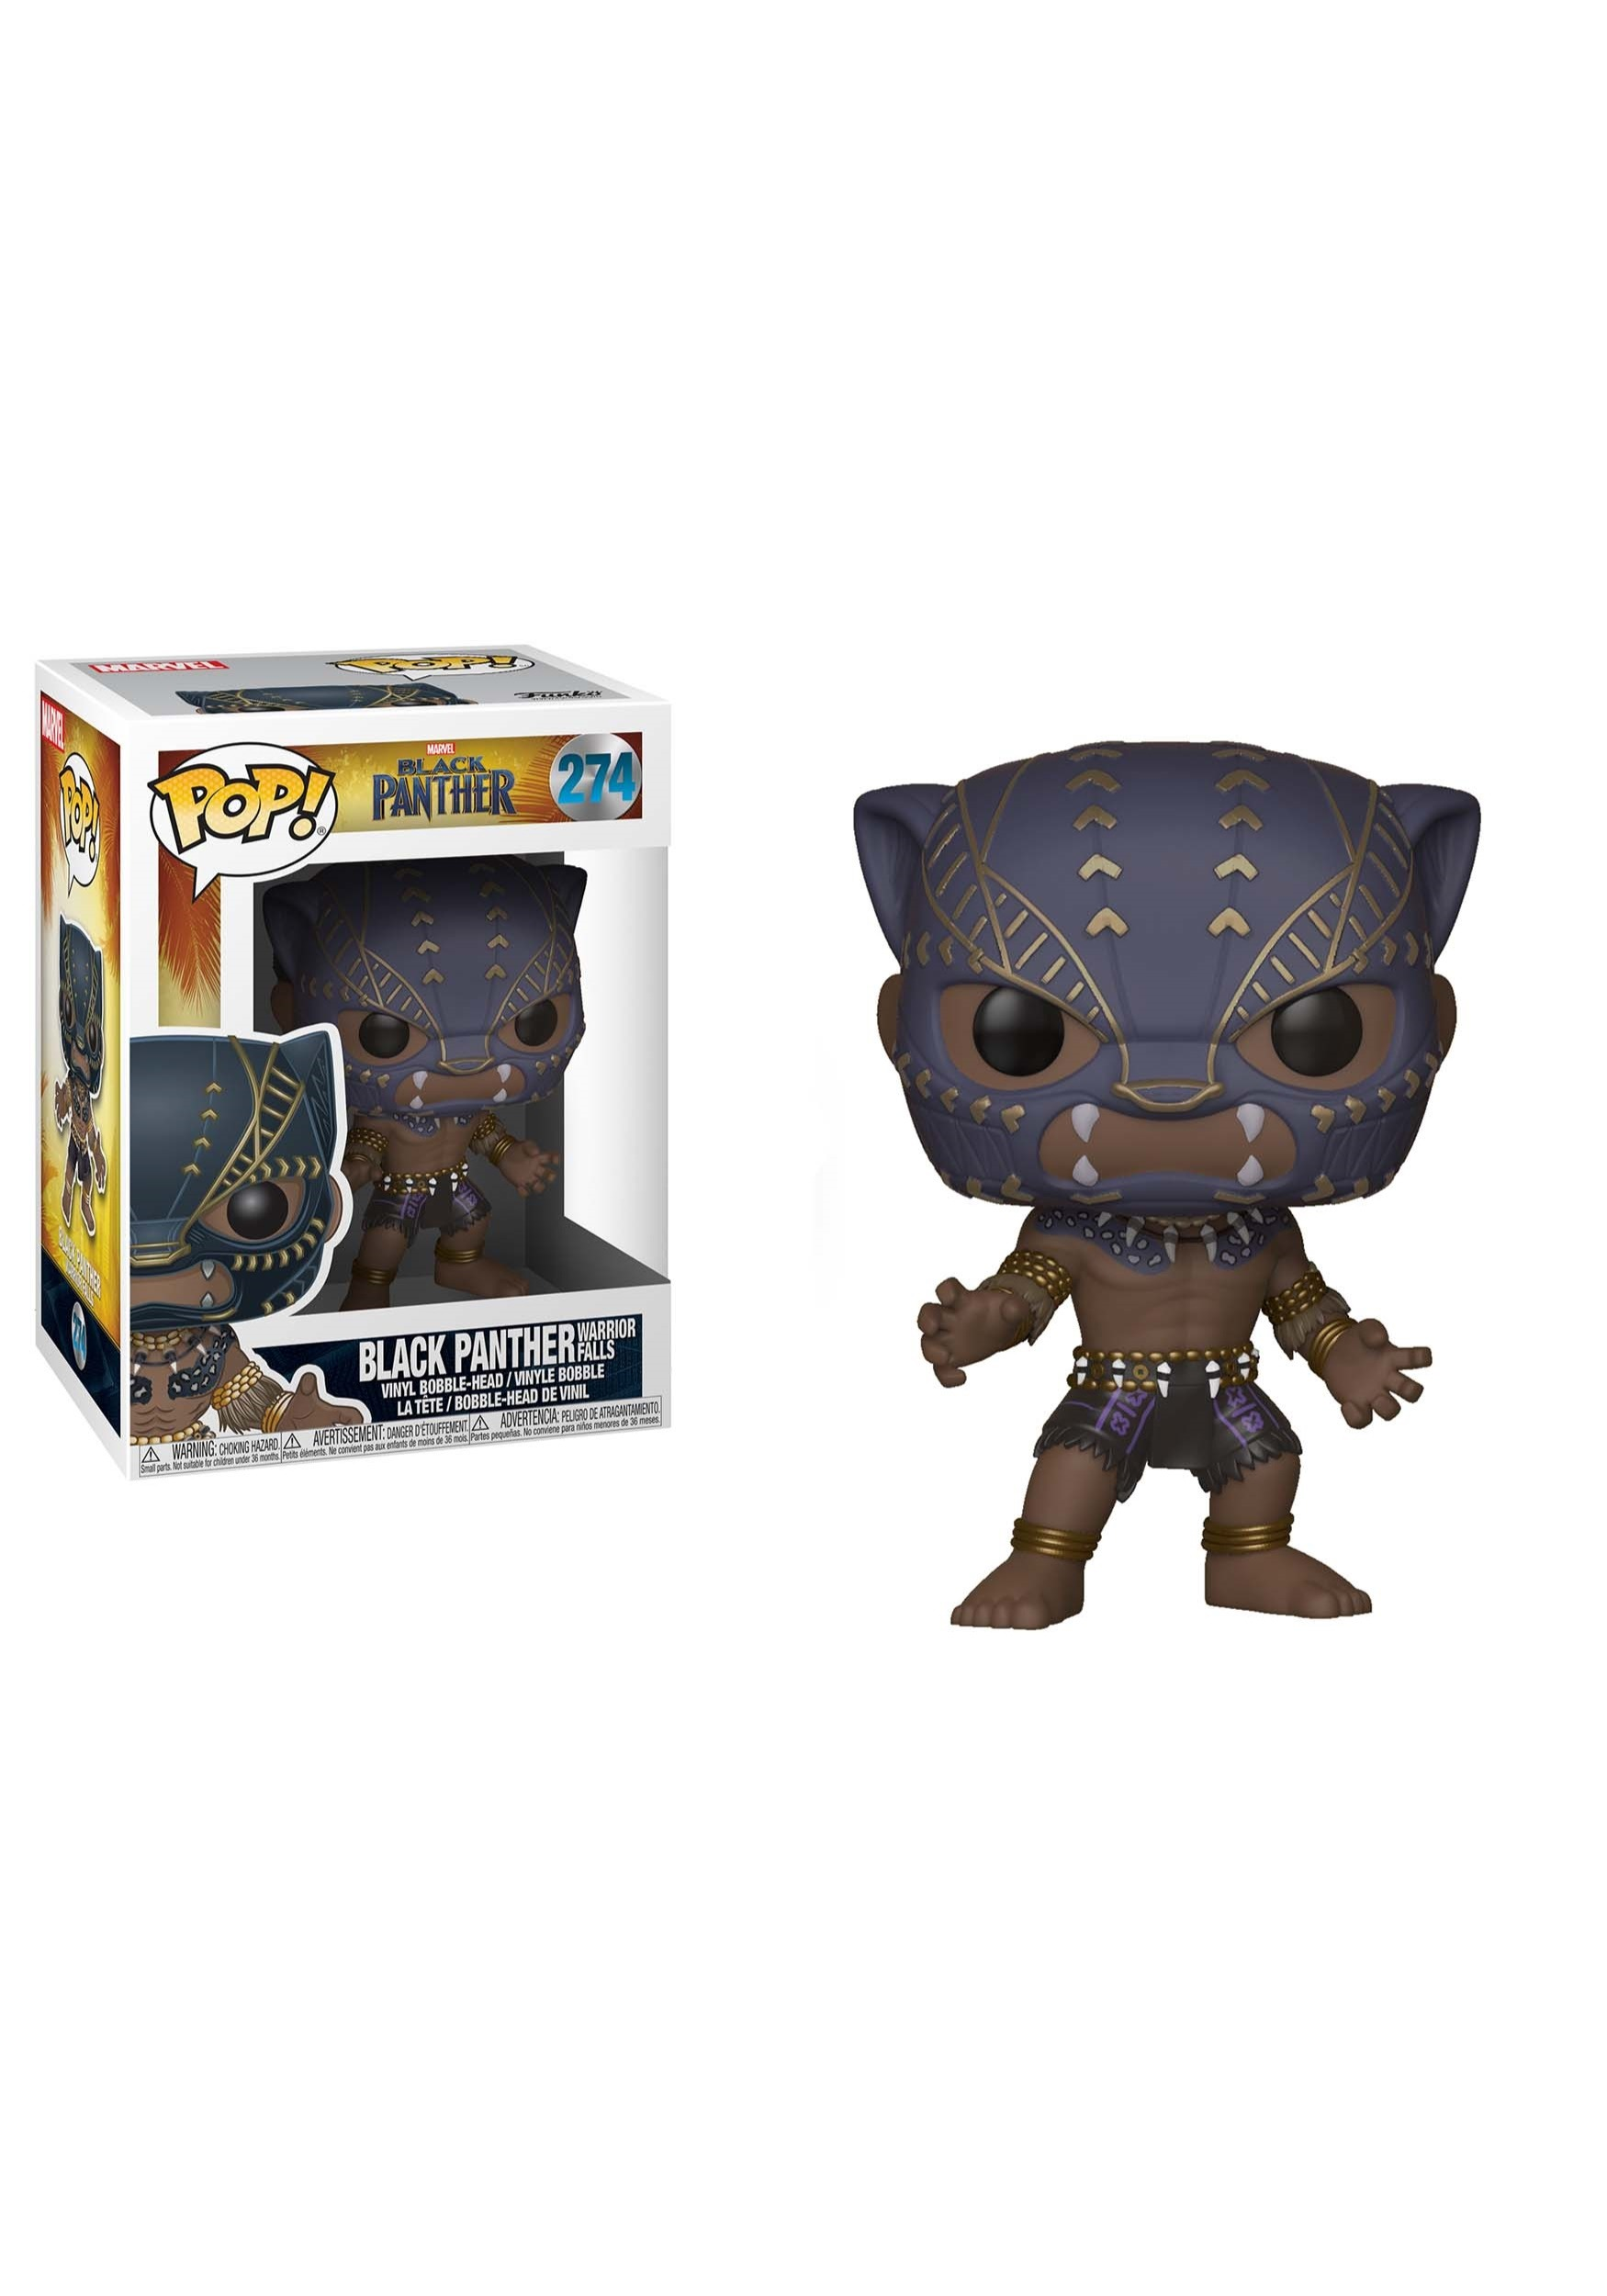 POP! Marvel: Black Panther Warrior Falls Bobblehead Figure FN23130